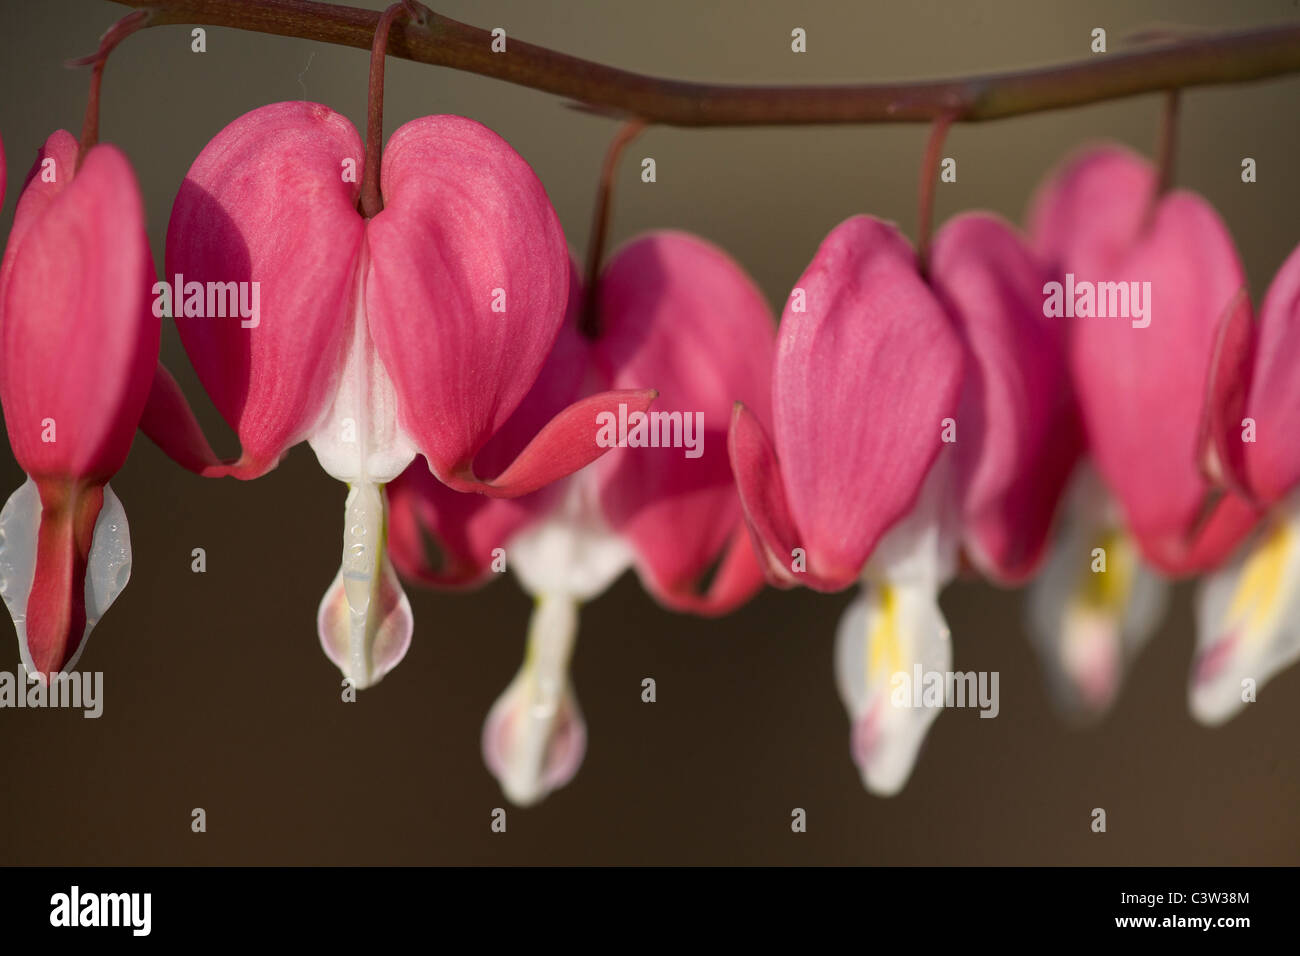 Bleeding Heart Flowers - Stock Image